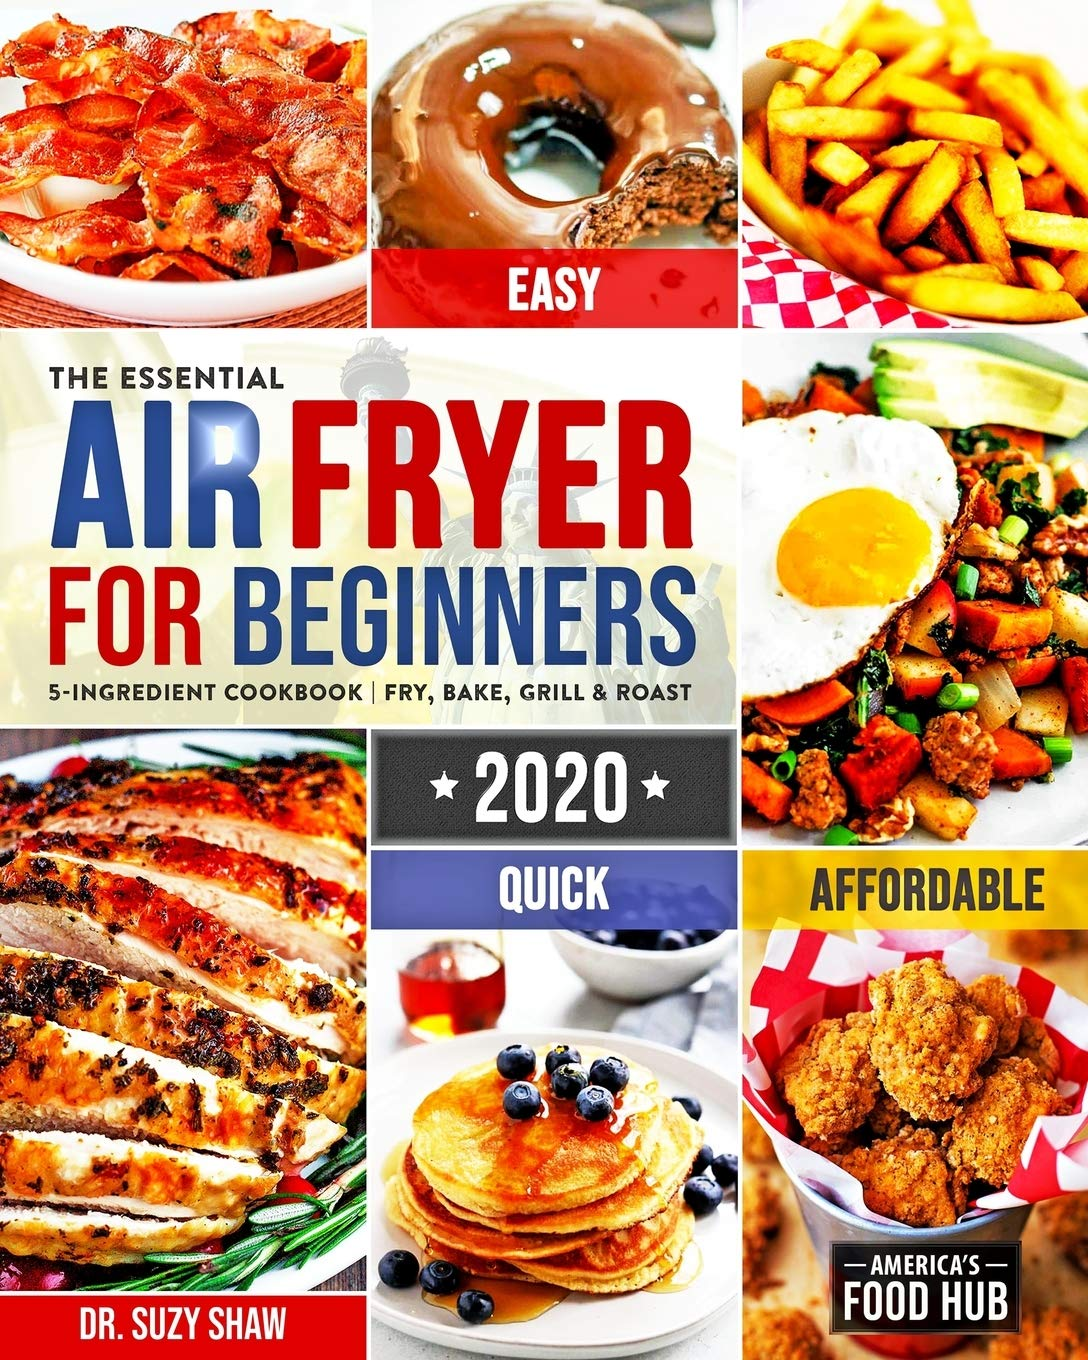 The Essential Air Fryer Cookbook for Beginners by America's Food Hub